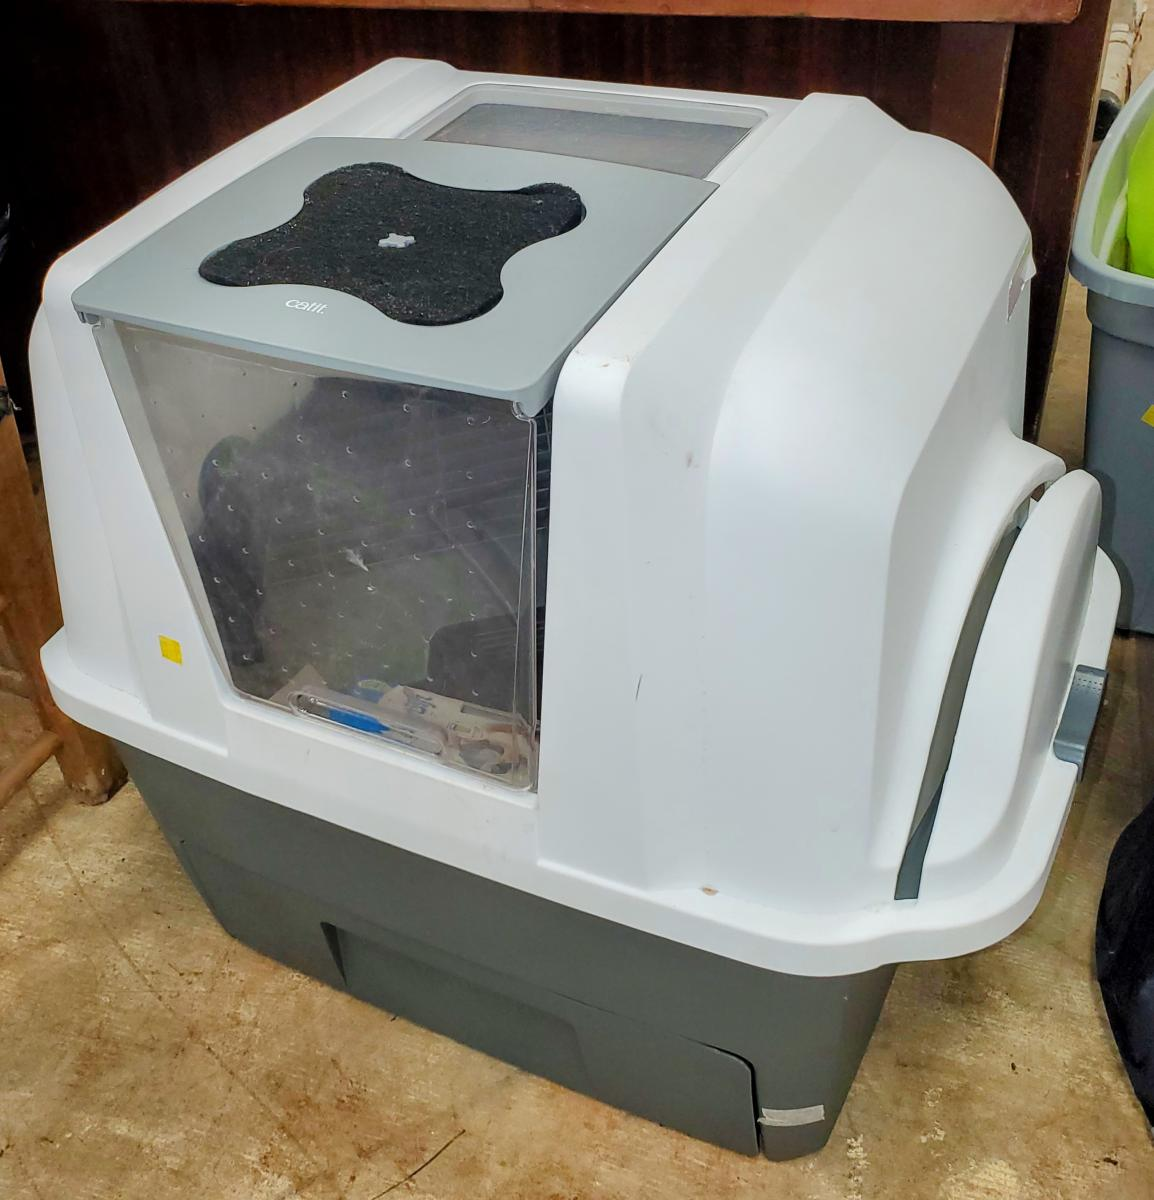 Photo 1 of Deluxe scooping litter box